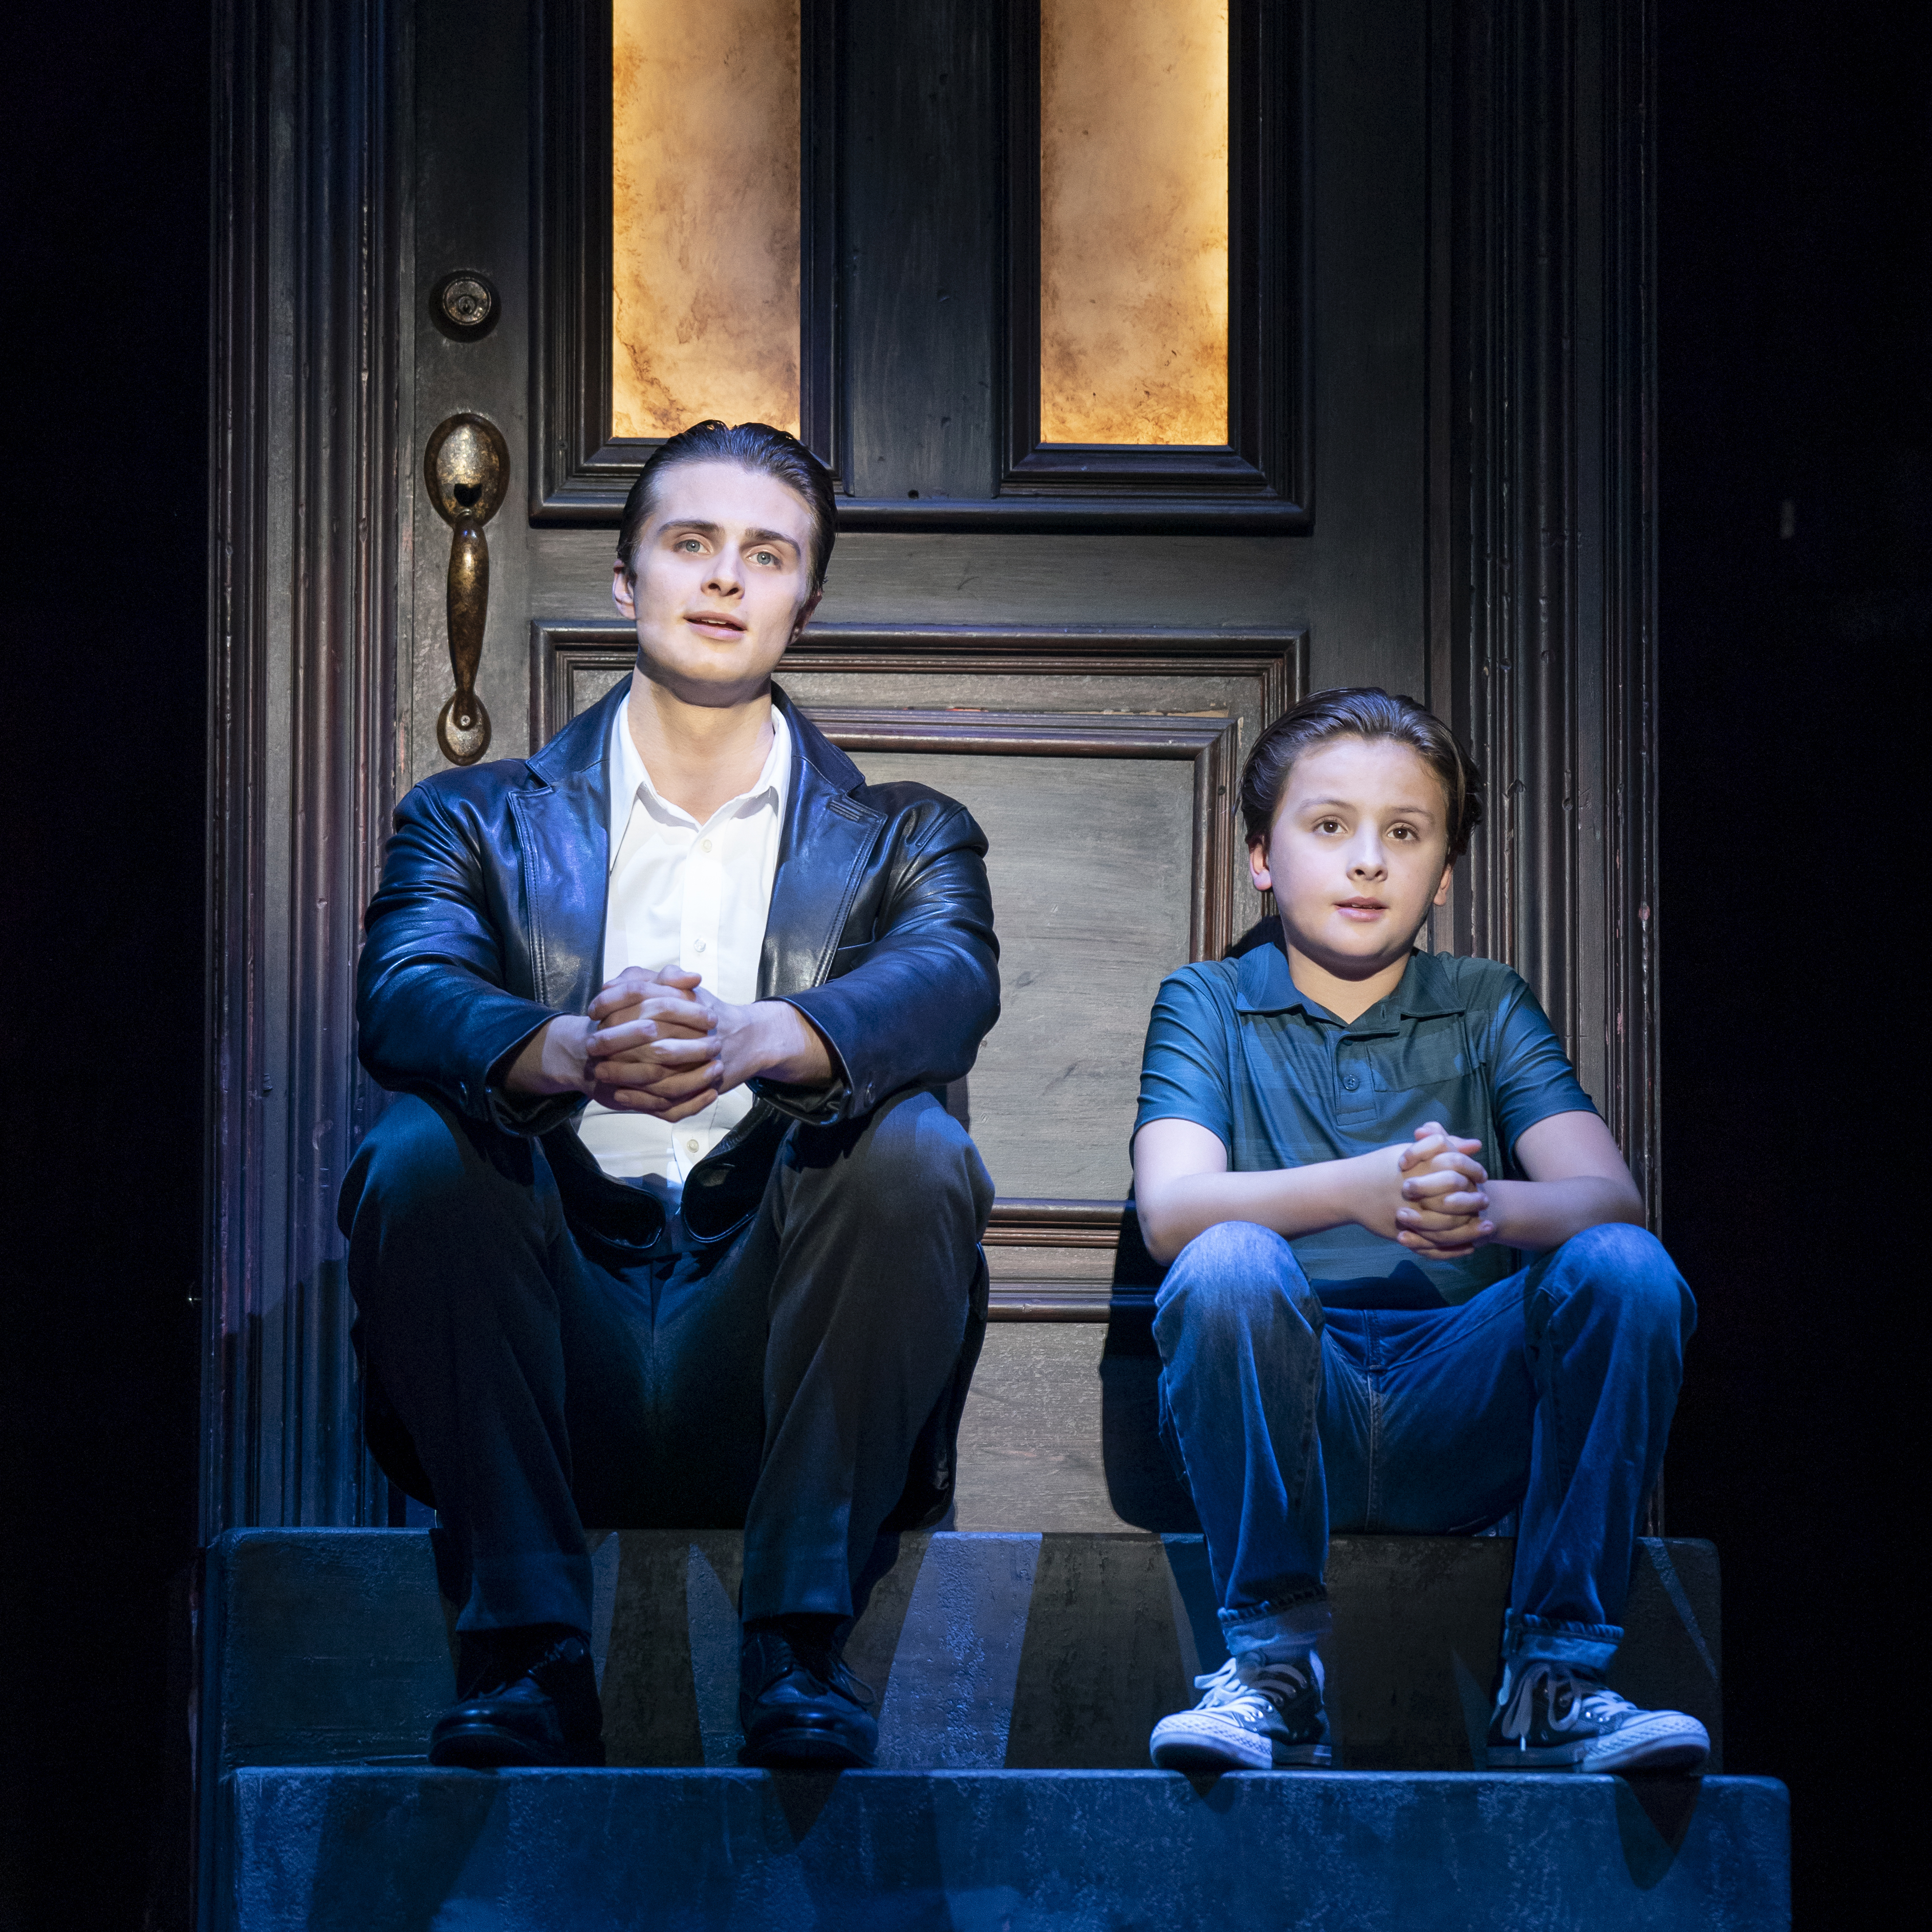 Alec Nevin as Calogero and Trey Murphy as Young C in A BRONX TALE. Photo by Joan Marcus